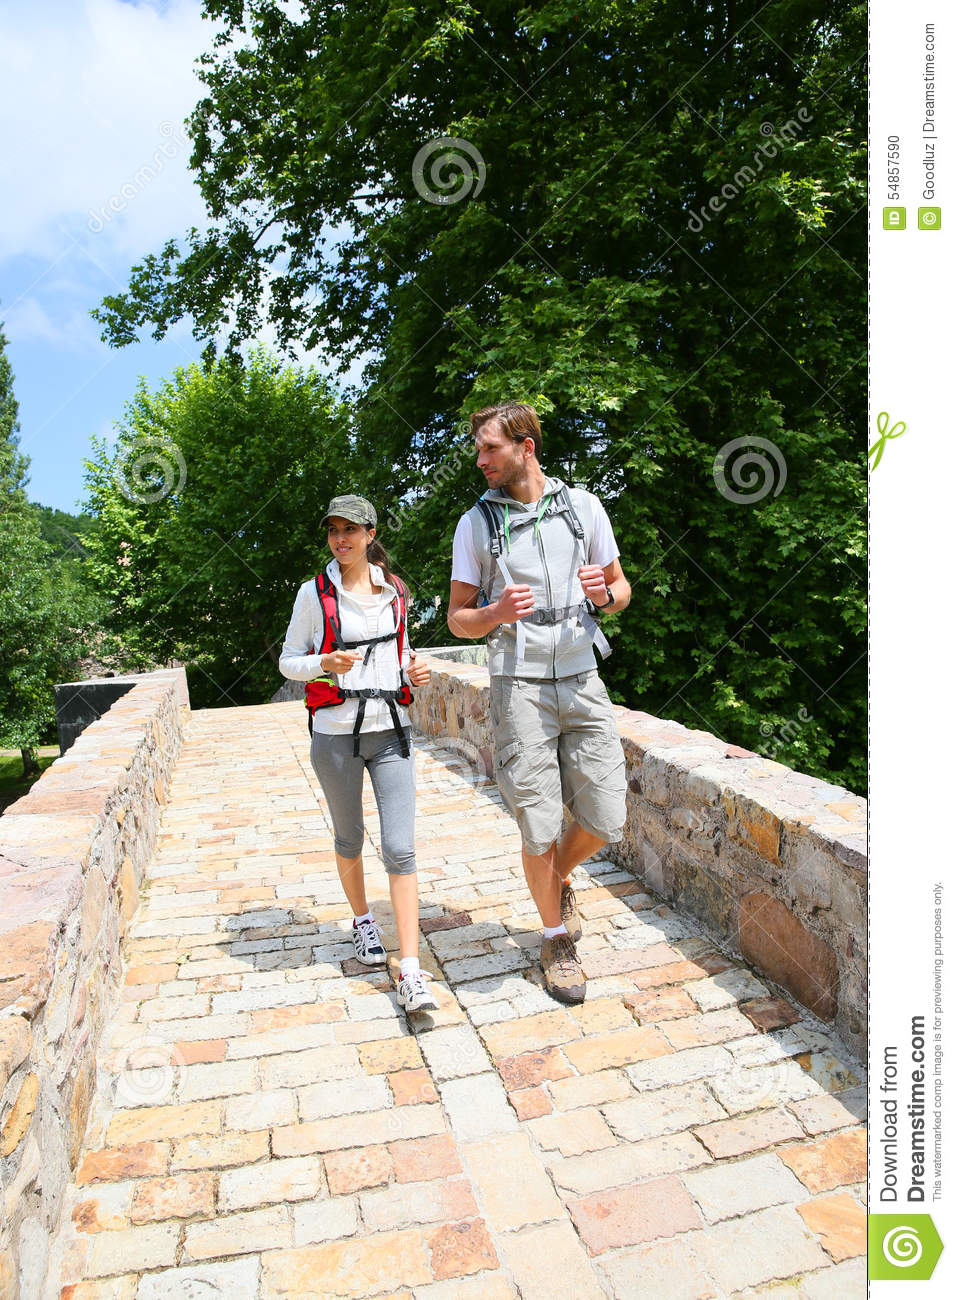 Couple of hikers enjoying trip